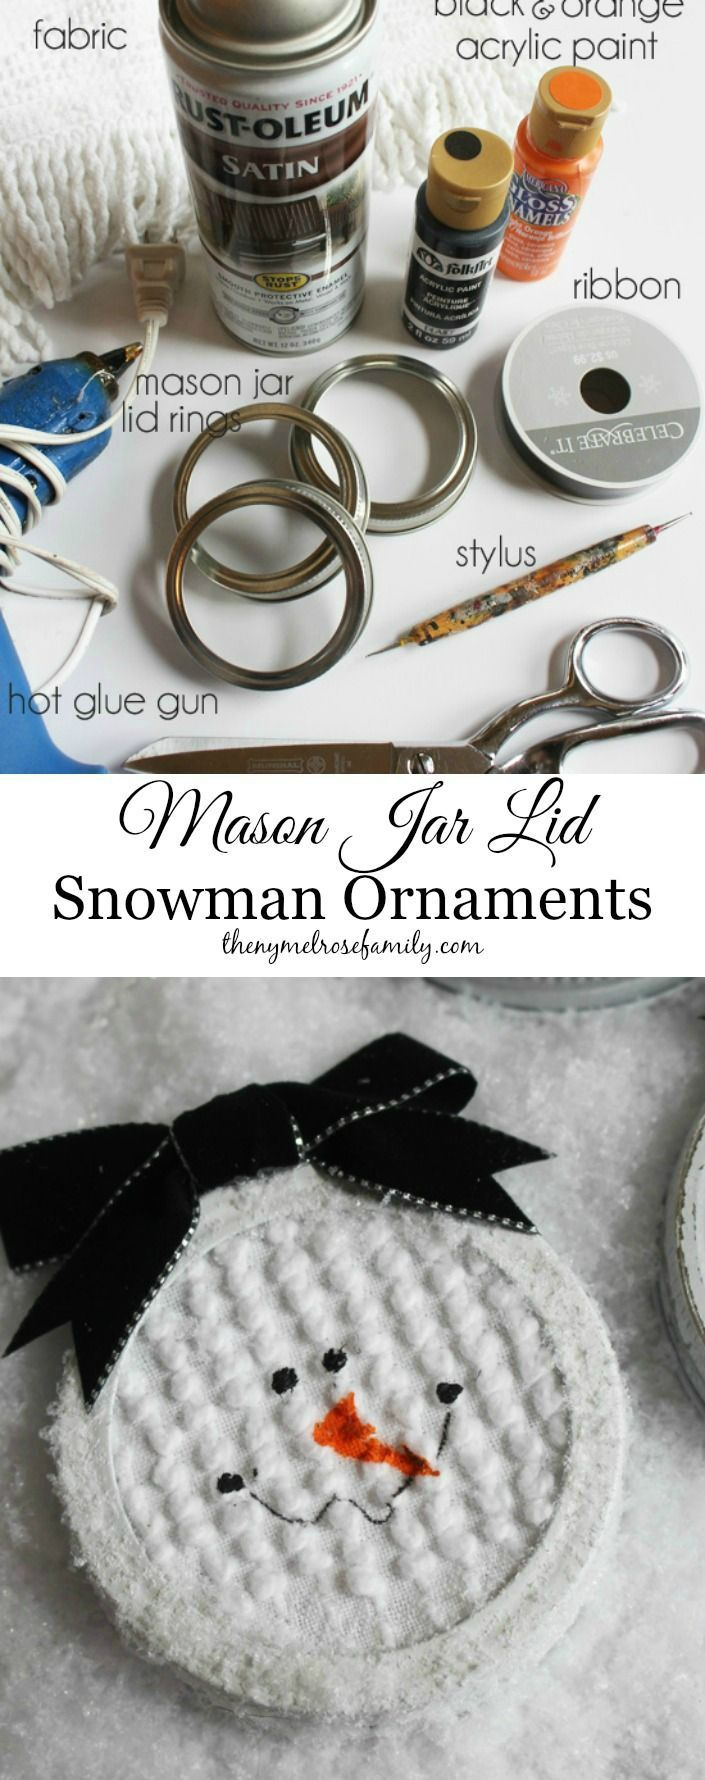 Mason Jar Lid Snowman Ornaments are cute and easy to make.